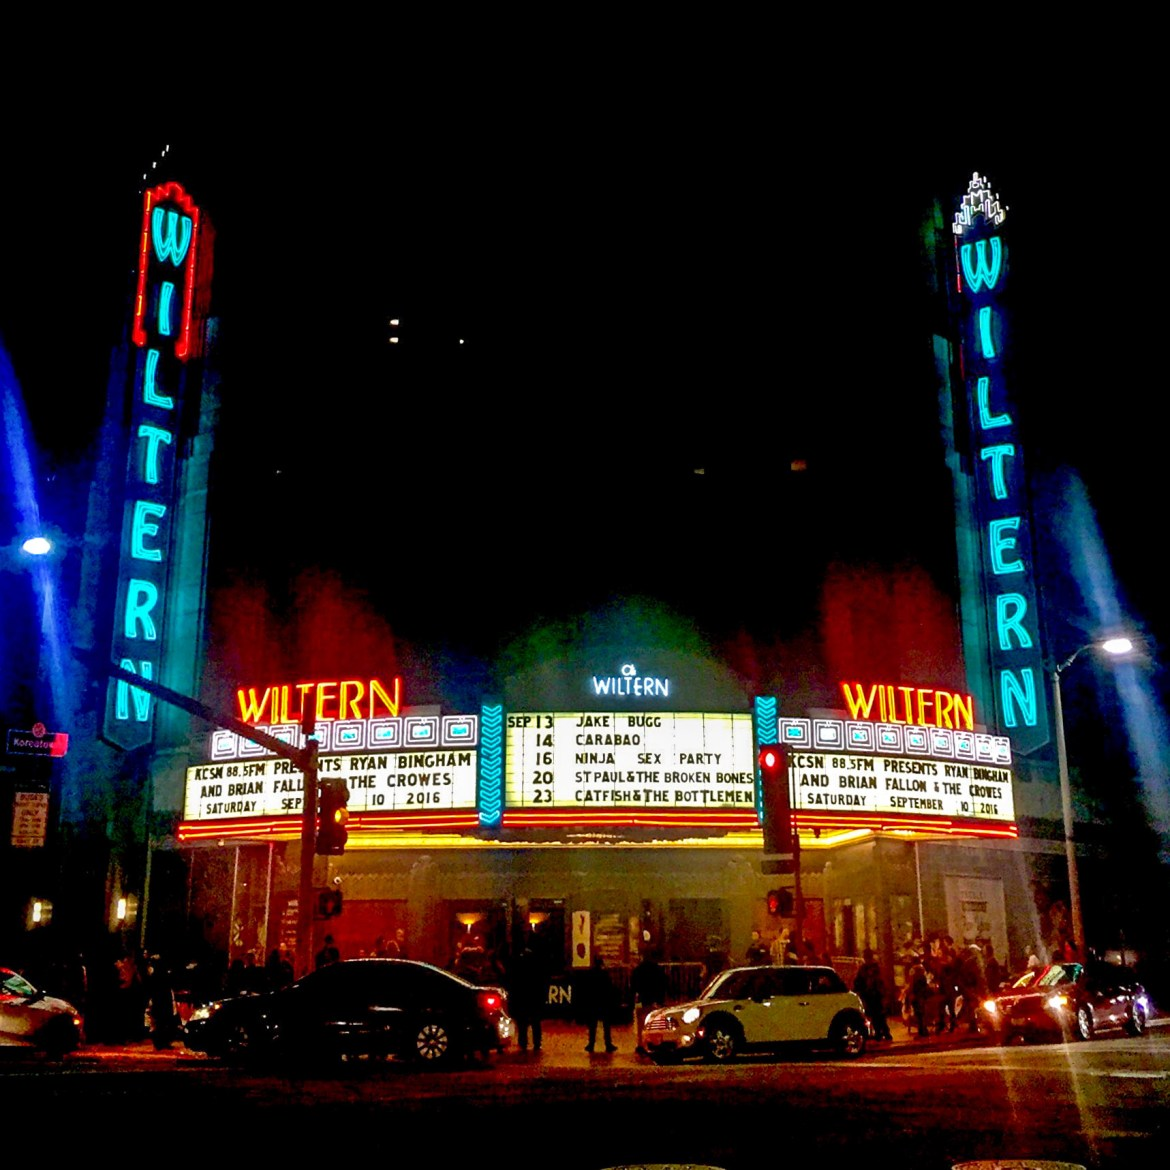 Wiltern Korea Town Los Angeles California